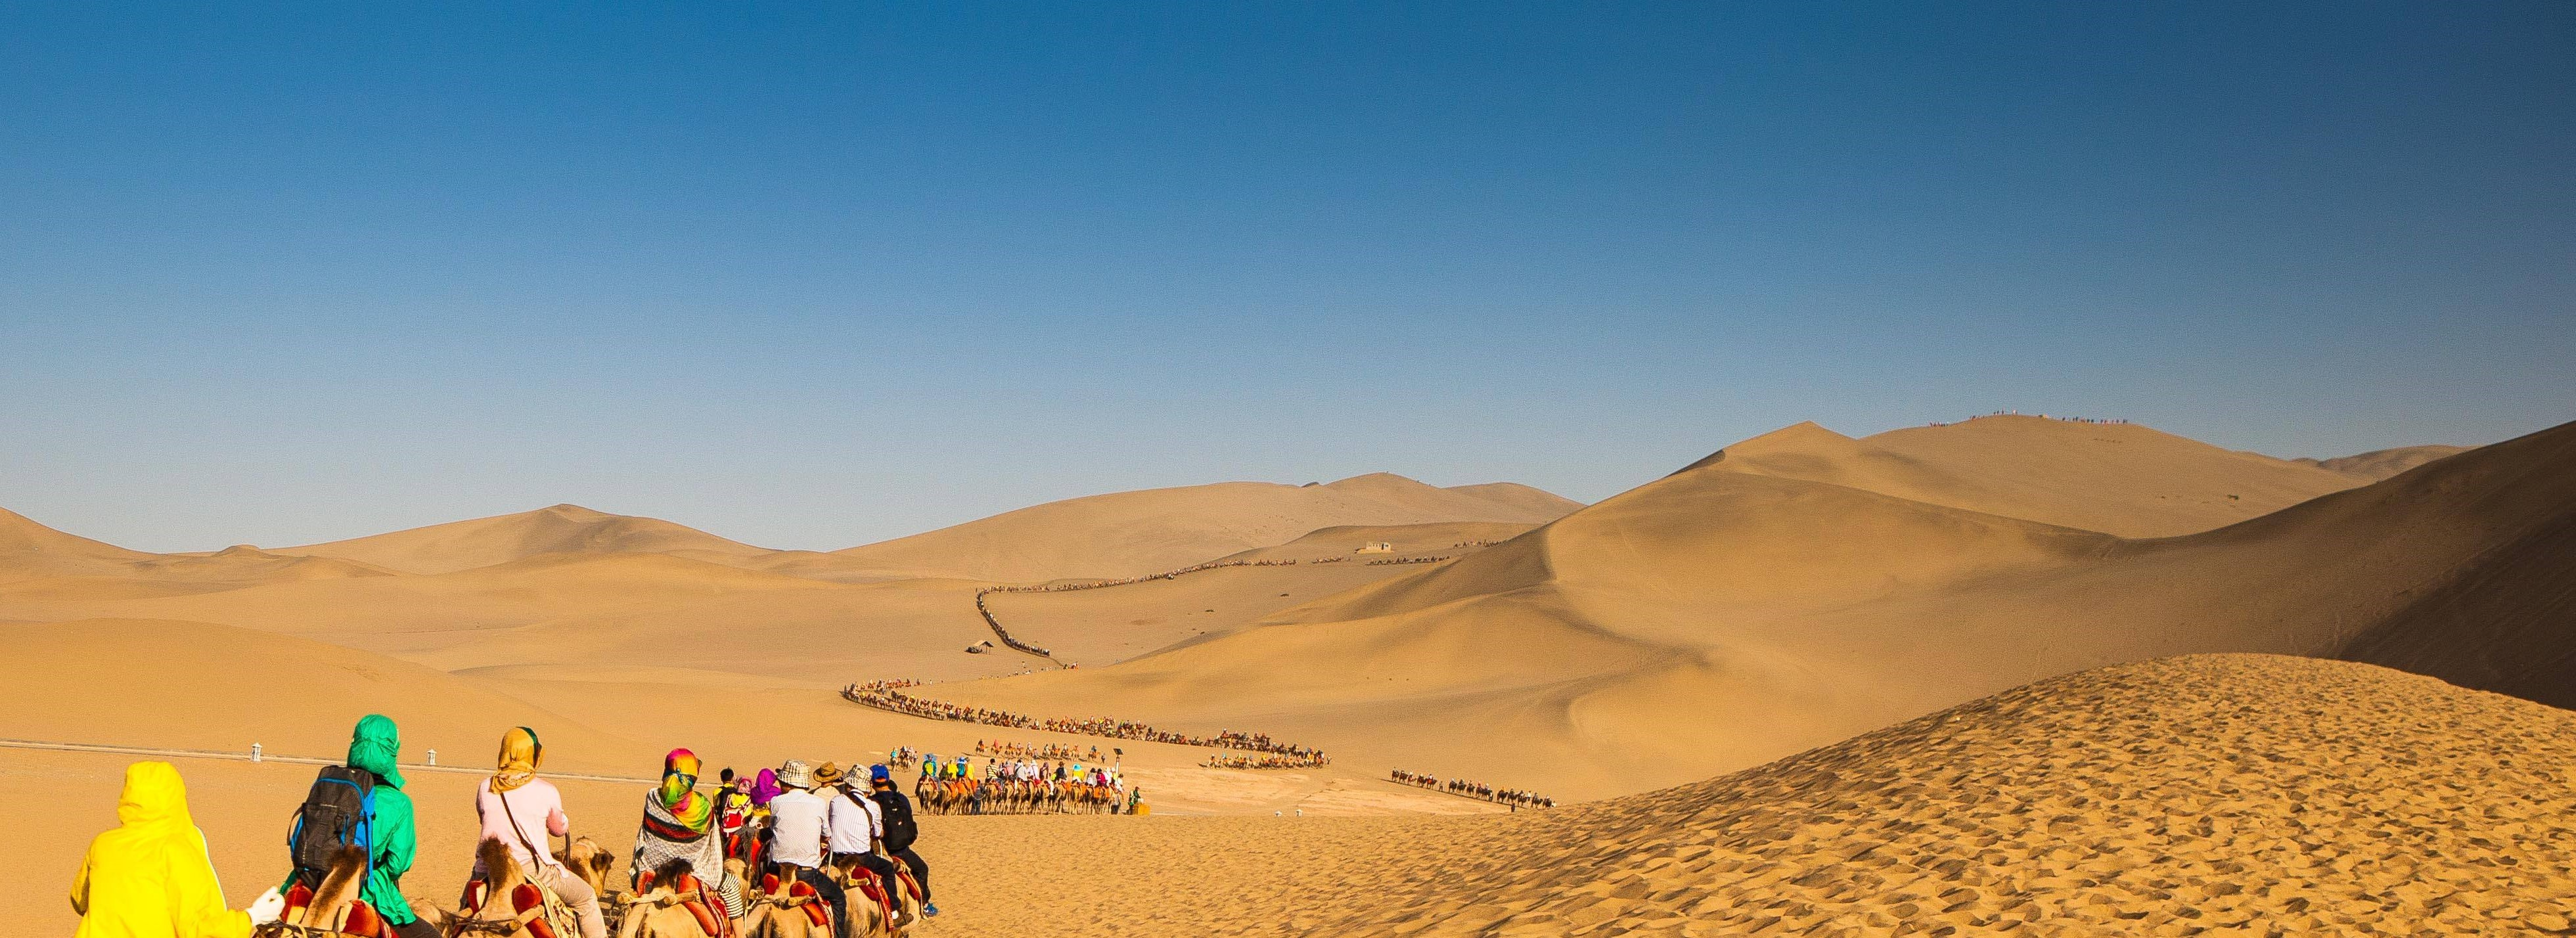 Camel-riding experience in Dunhuang